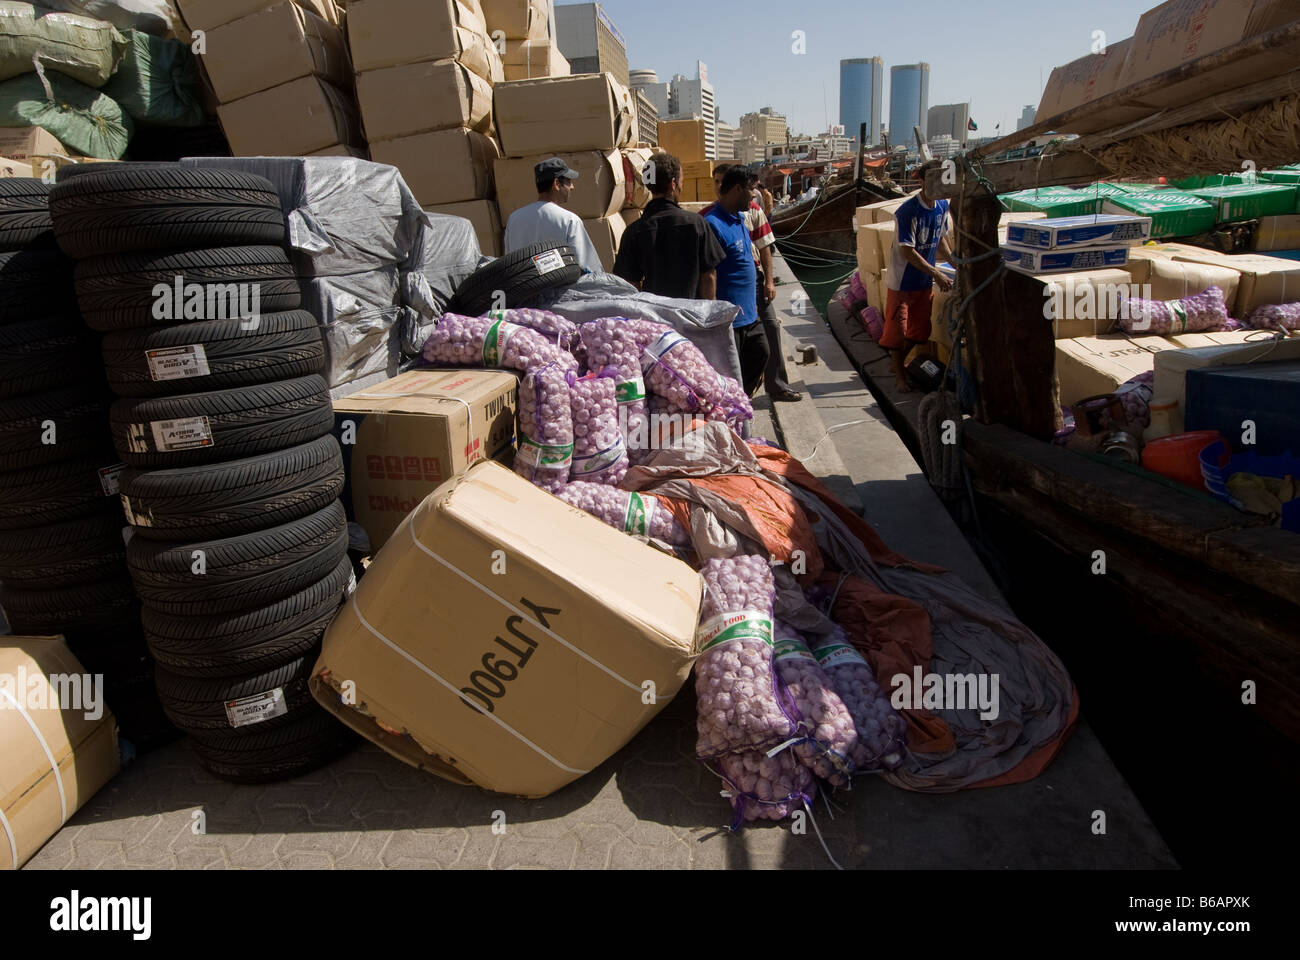 A wide variety of goods await loading on a small ship in Dubai creek